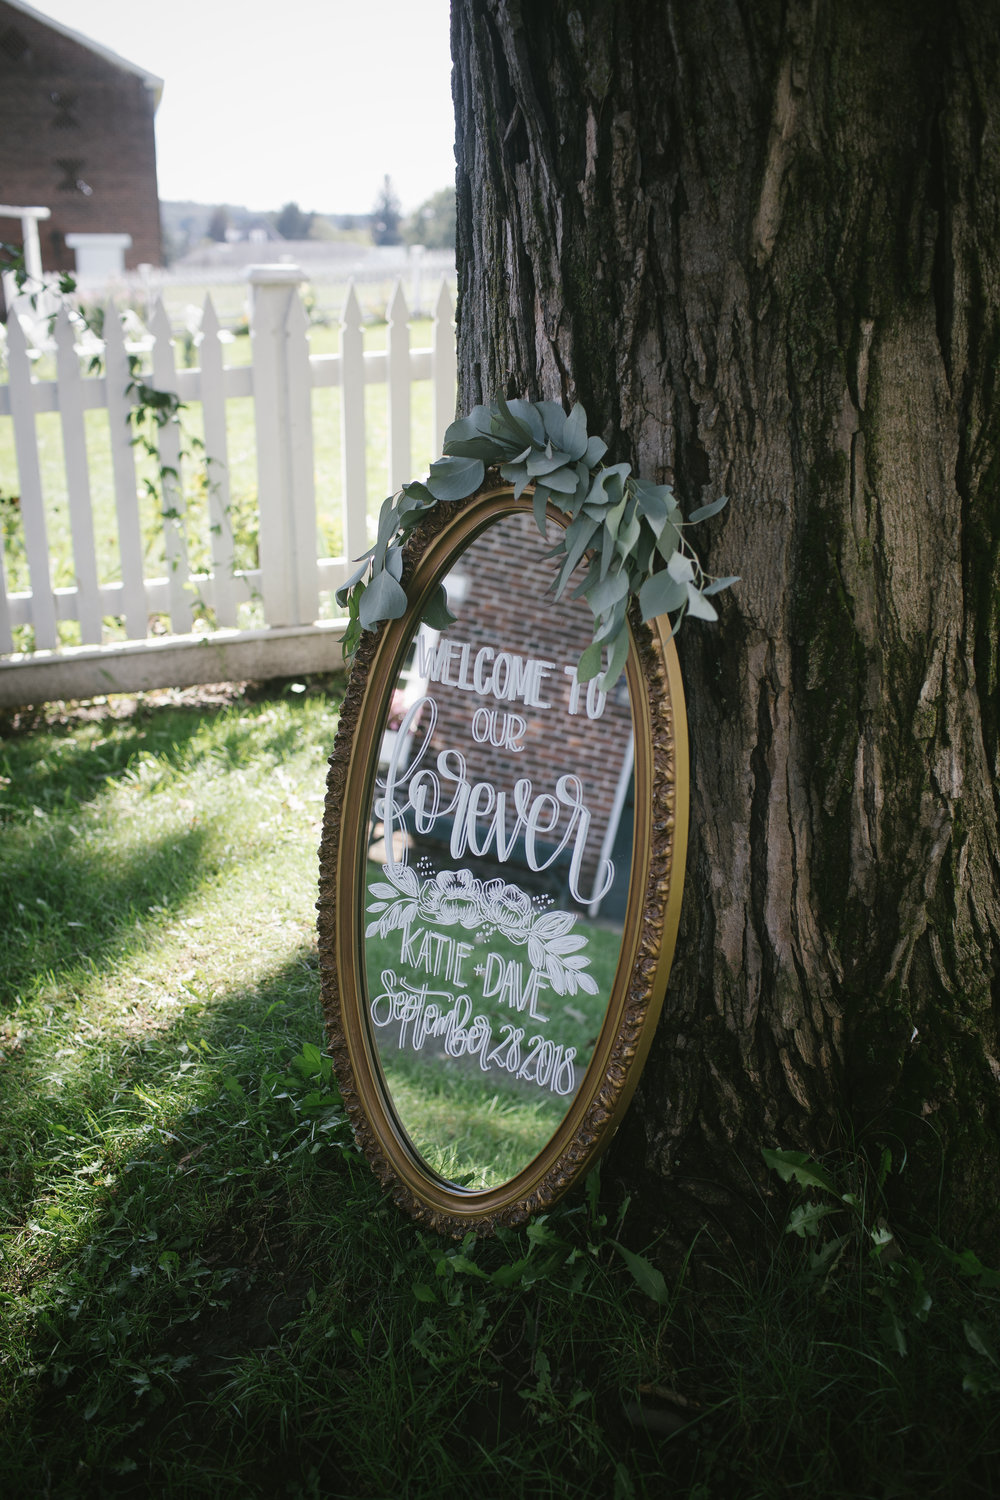 Mirror wedding sign for wedding ceremony decor at rustic wedding in Pittsburgh, PA planned by Exhale Events. Find more wedding inspiration at exhale-events.com!